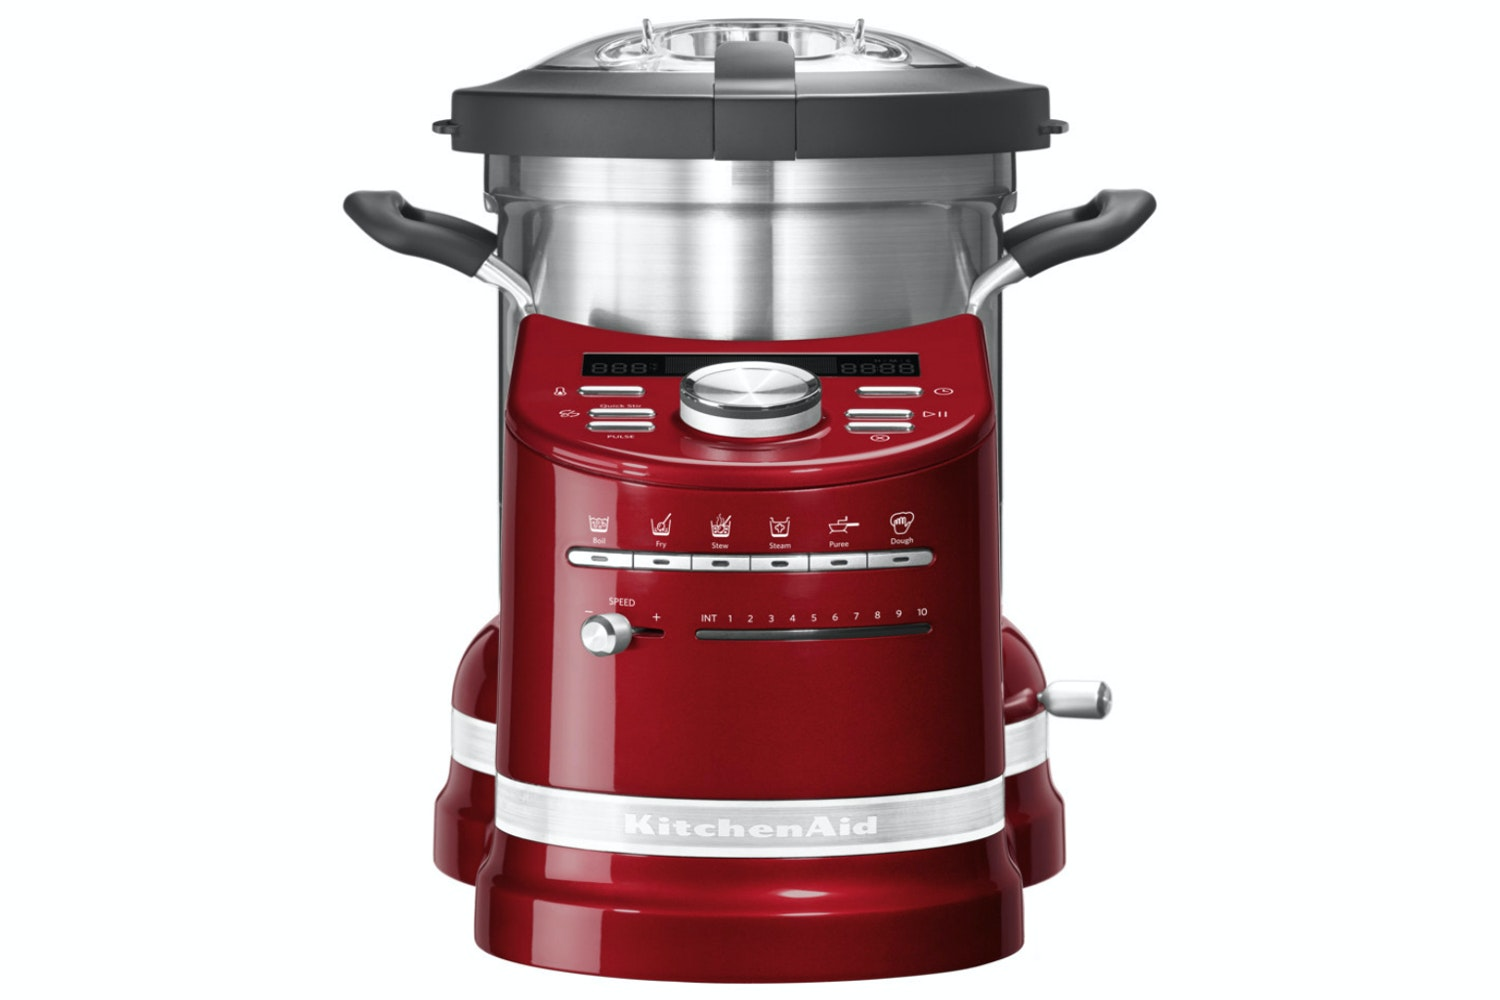 KitchenAid Artisan Cook Processor | Candy Apple